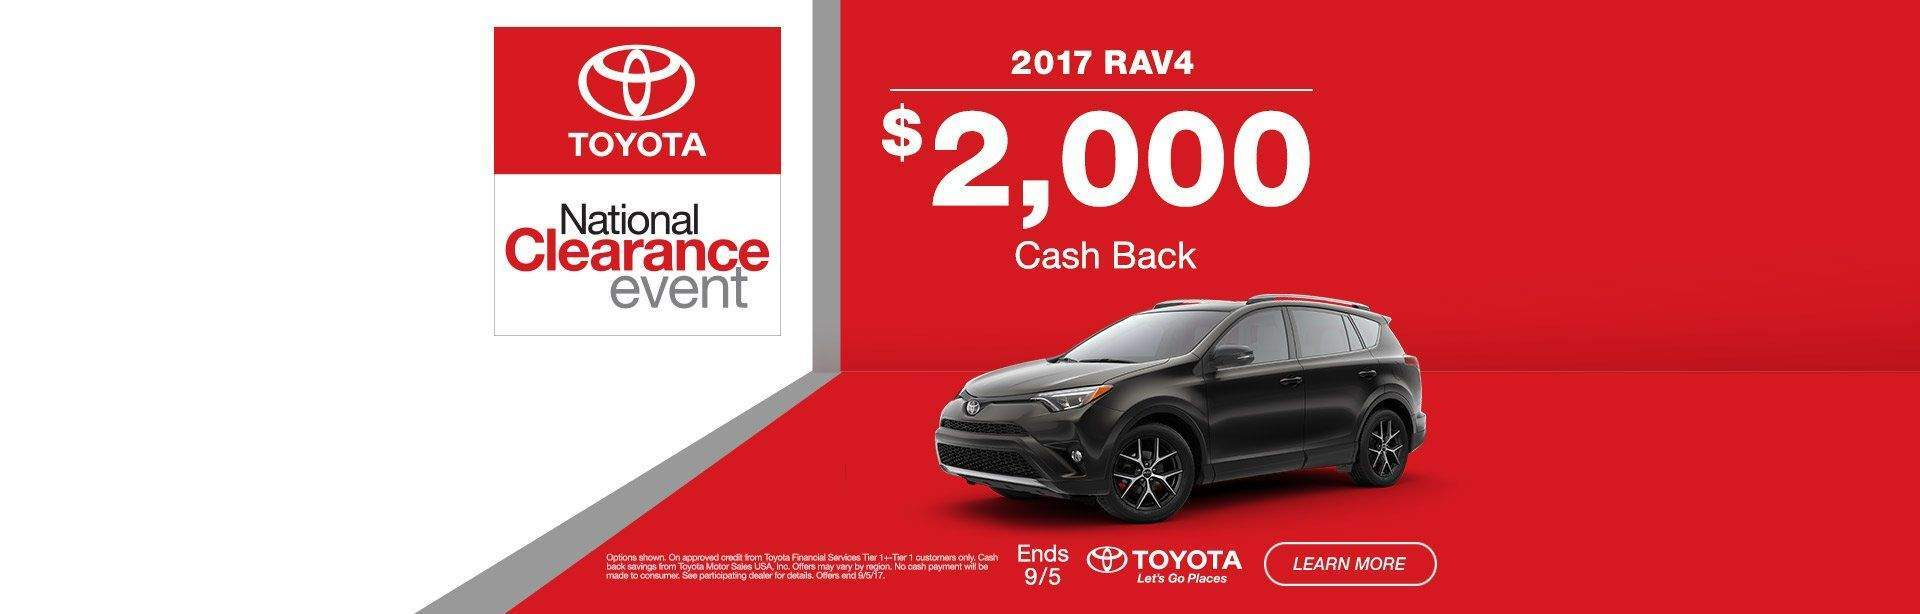 National Clearance Event RAV4